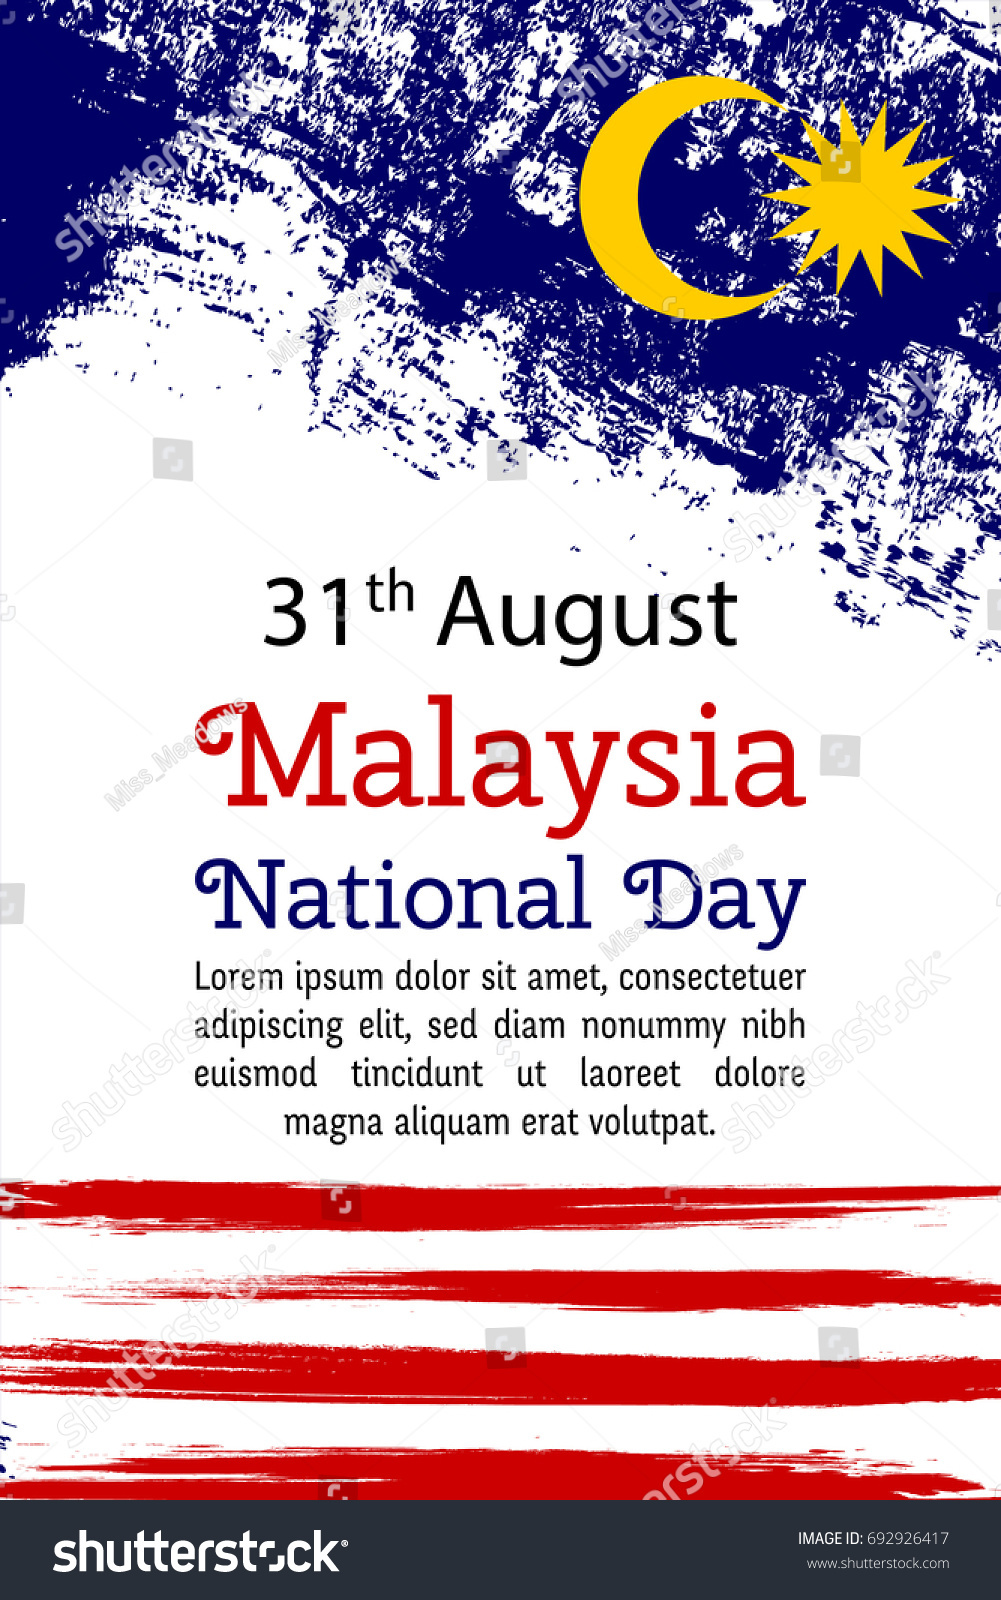 national day of malaysia Essays - largest database of quality sample essays and research papers on malaysia national day celebration.